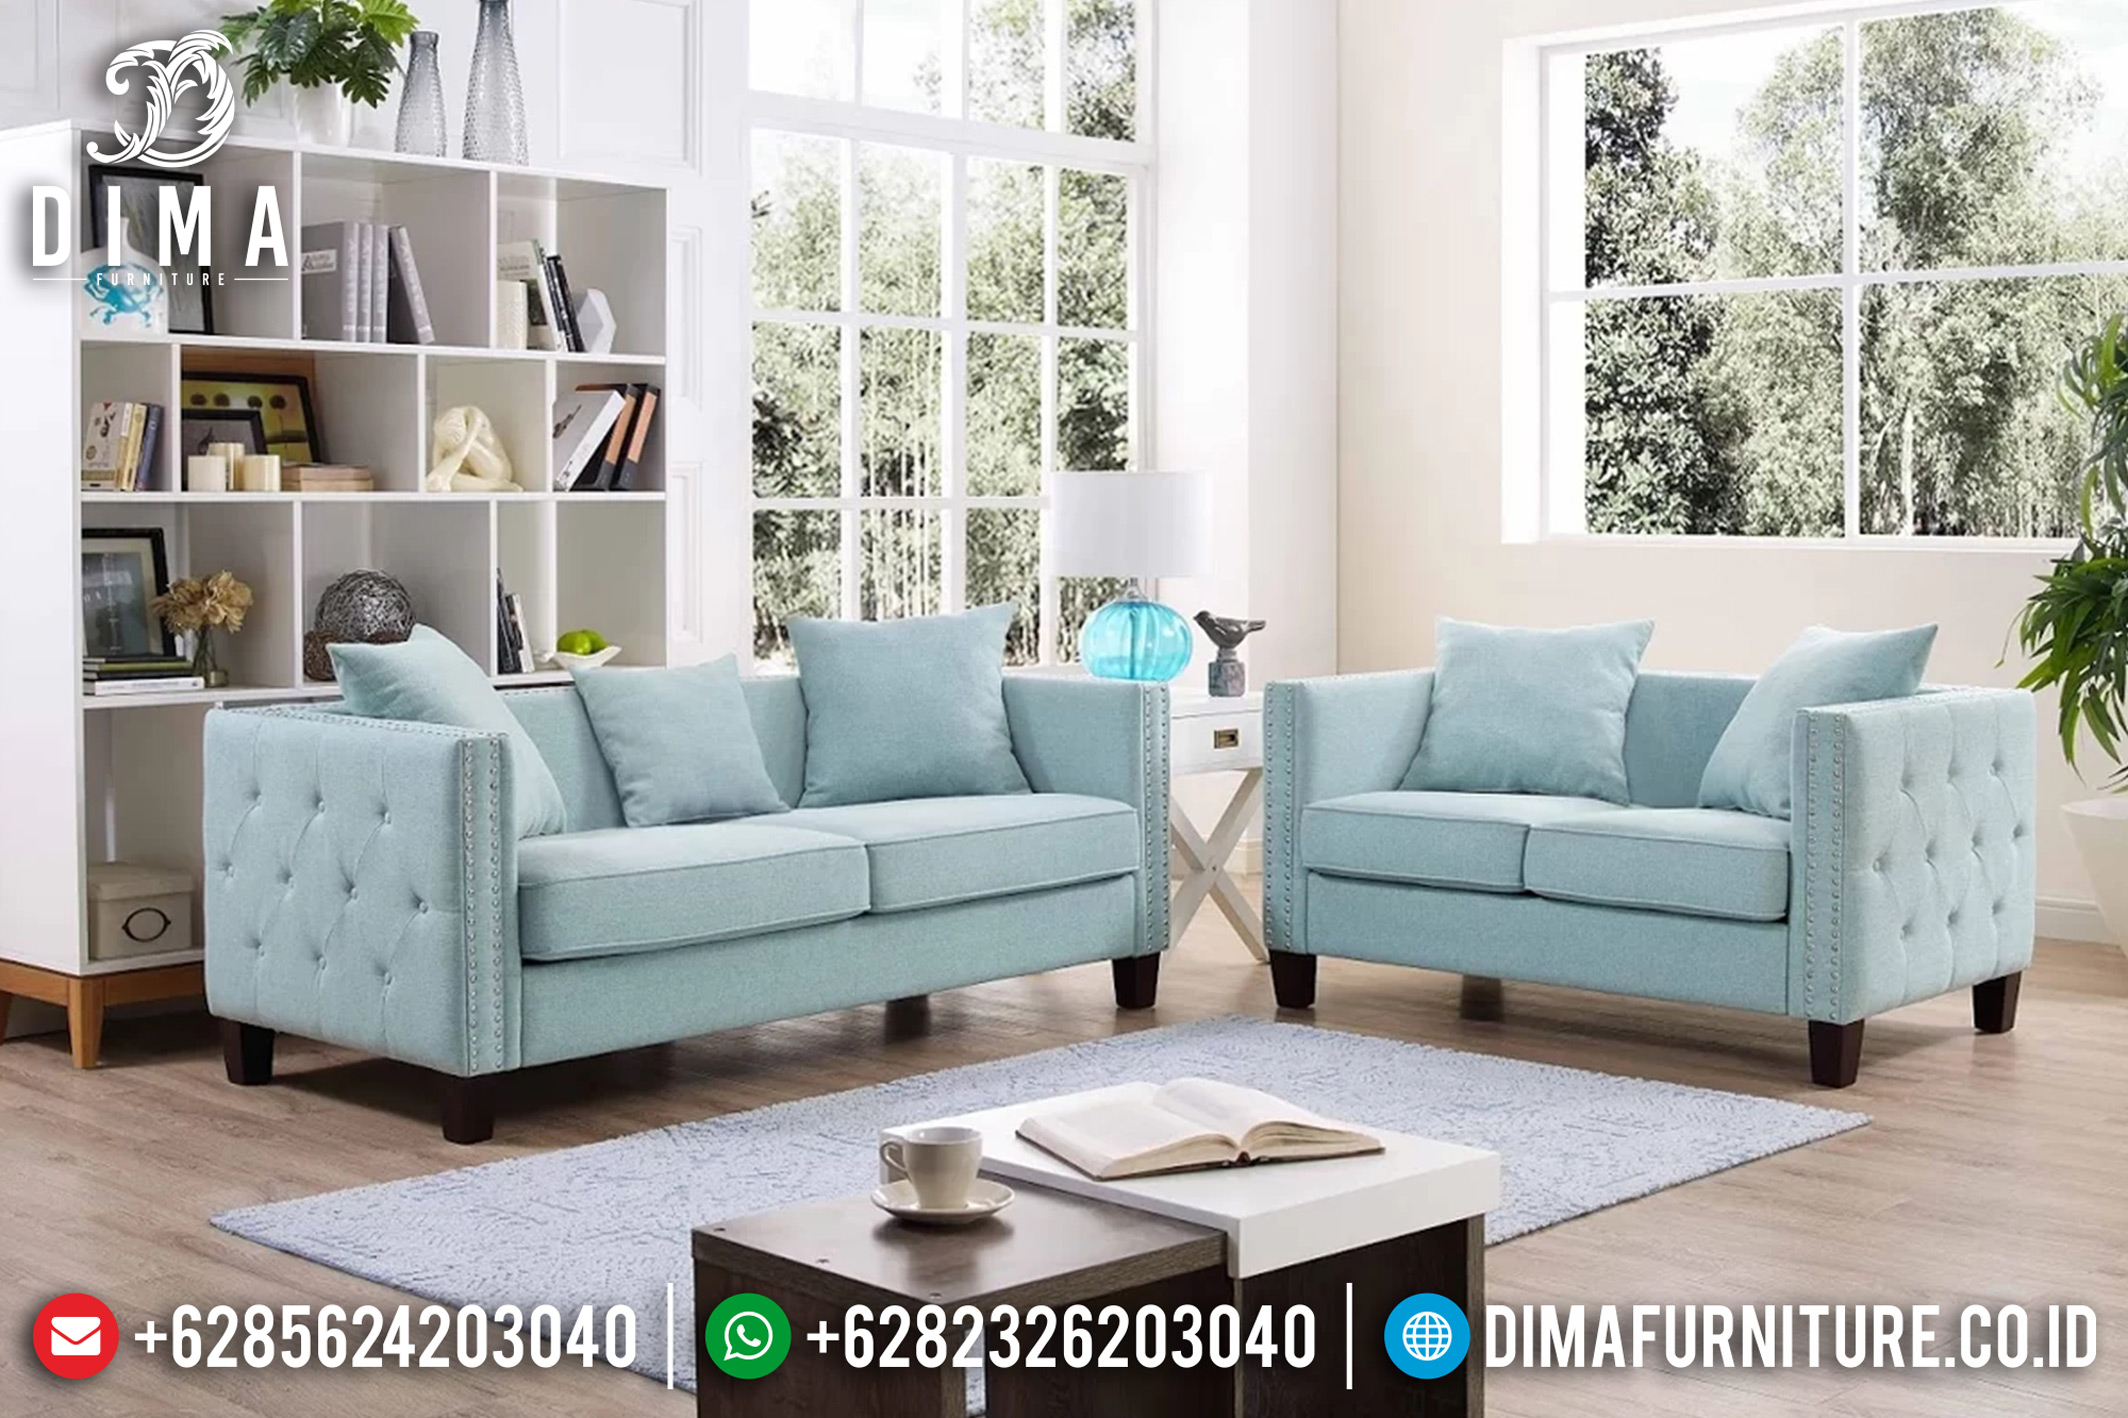 Furniture Indonesia, Sofa Tamu Jepara Minimalis, Model Sofa Terbaru DF-0683